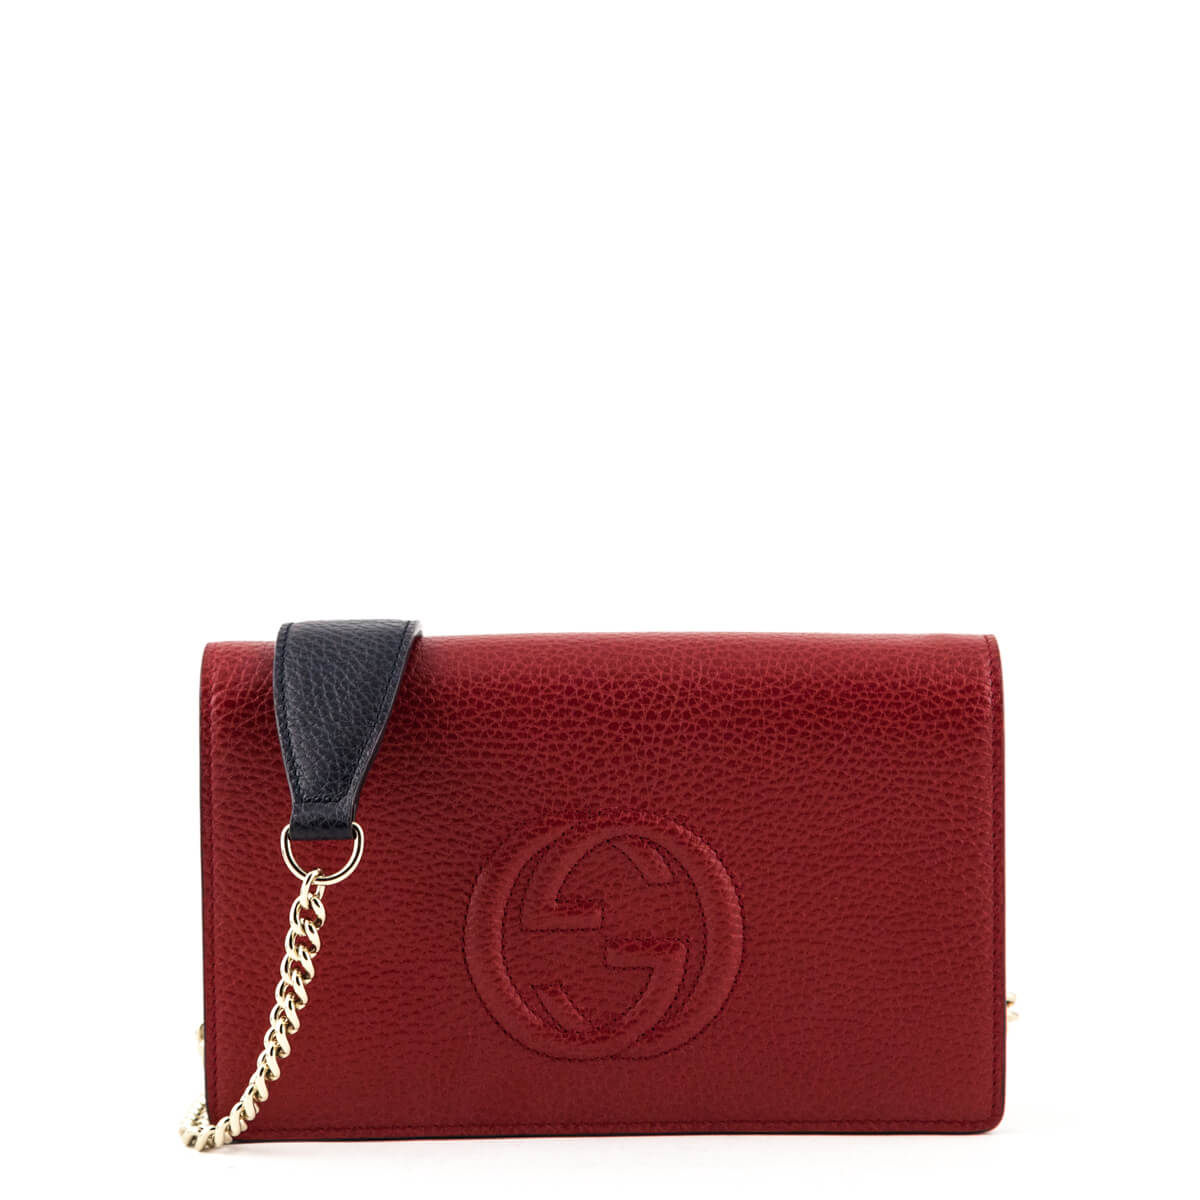 52ed00eddd4 Gucci Tricolor Soho Wallet On Chain - LOVE that BAG - Preowned Authentic  Designer Handbags ...